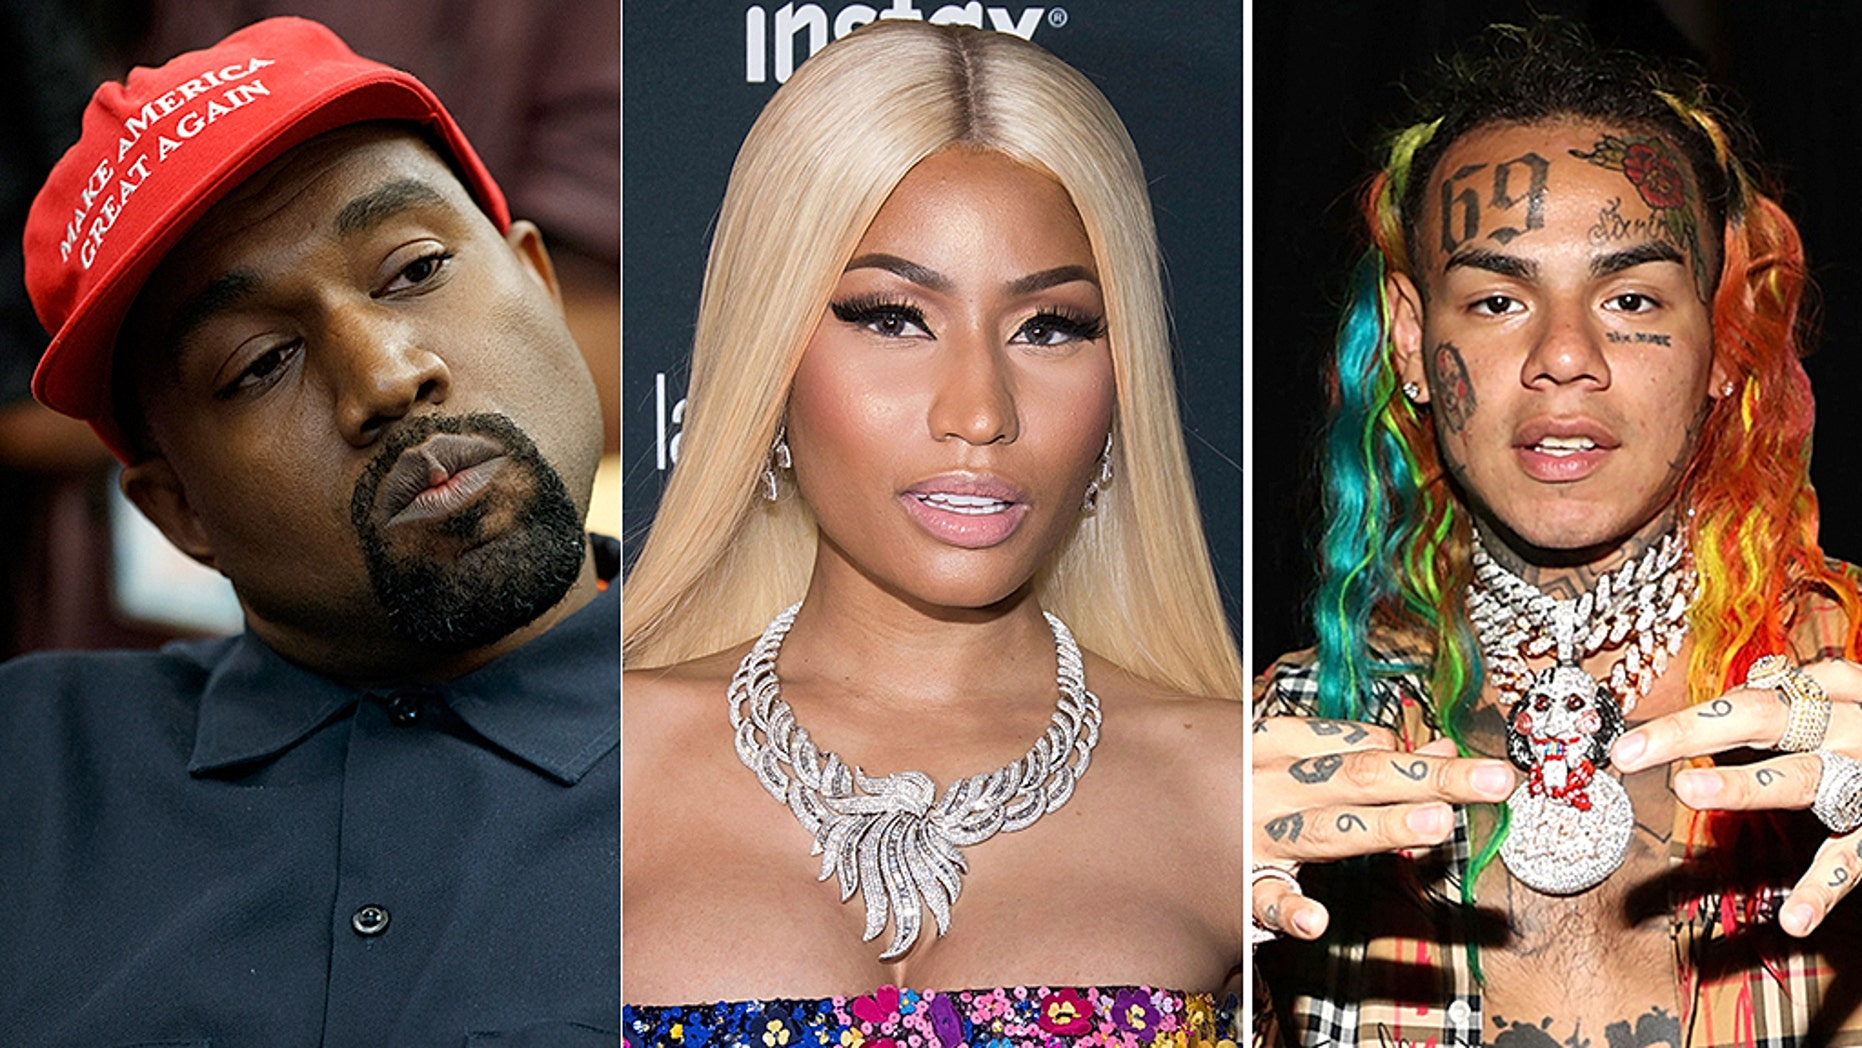 Shots Fired on Set of 6ix9ine Video with Kanye West & Nicki Minaj